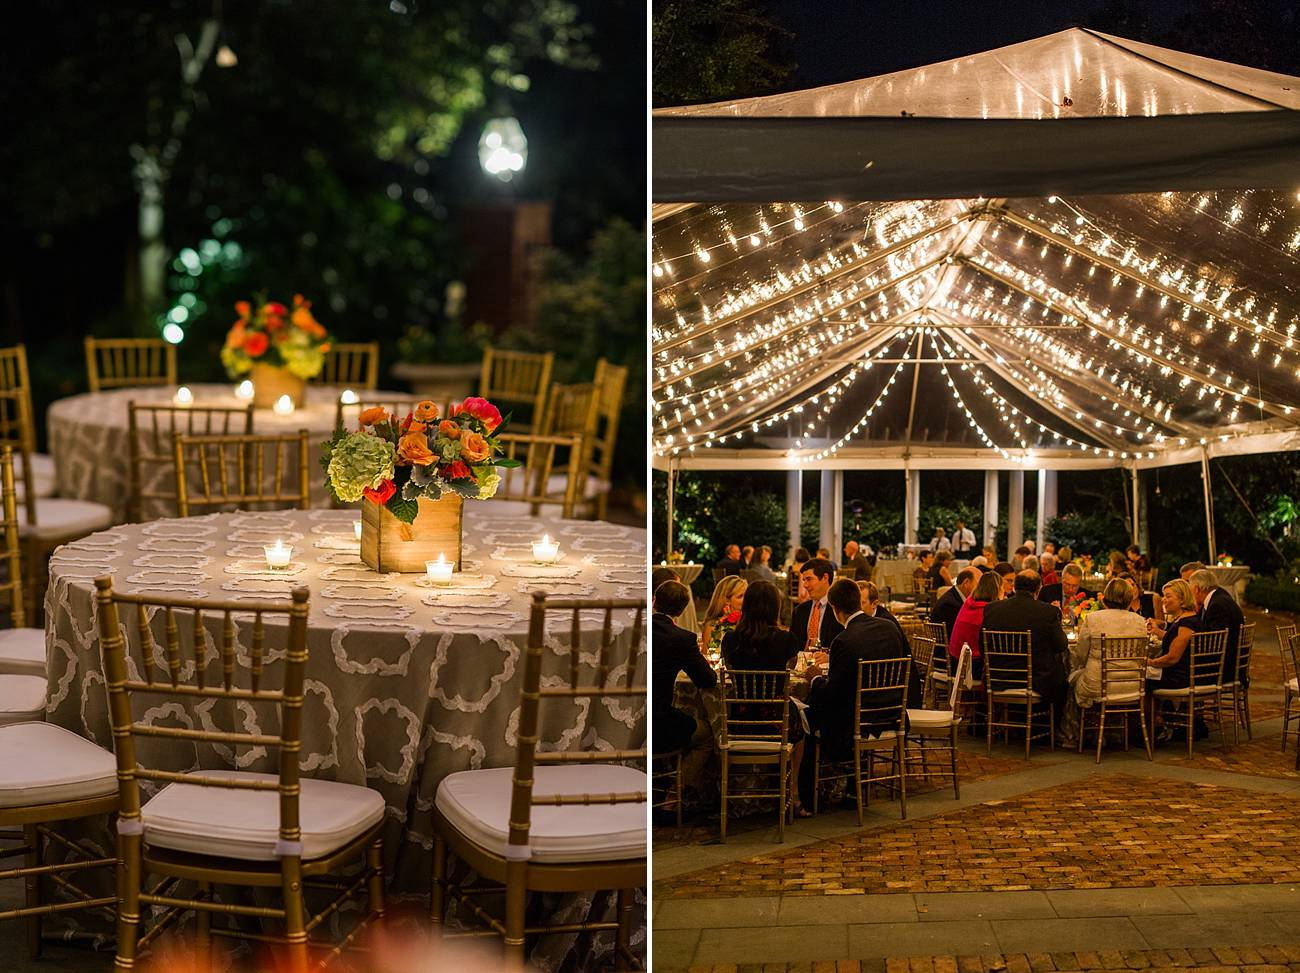 Table settings and the tent at the Duke Mansion in Charlotte, NC